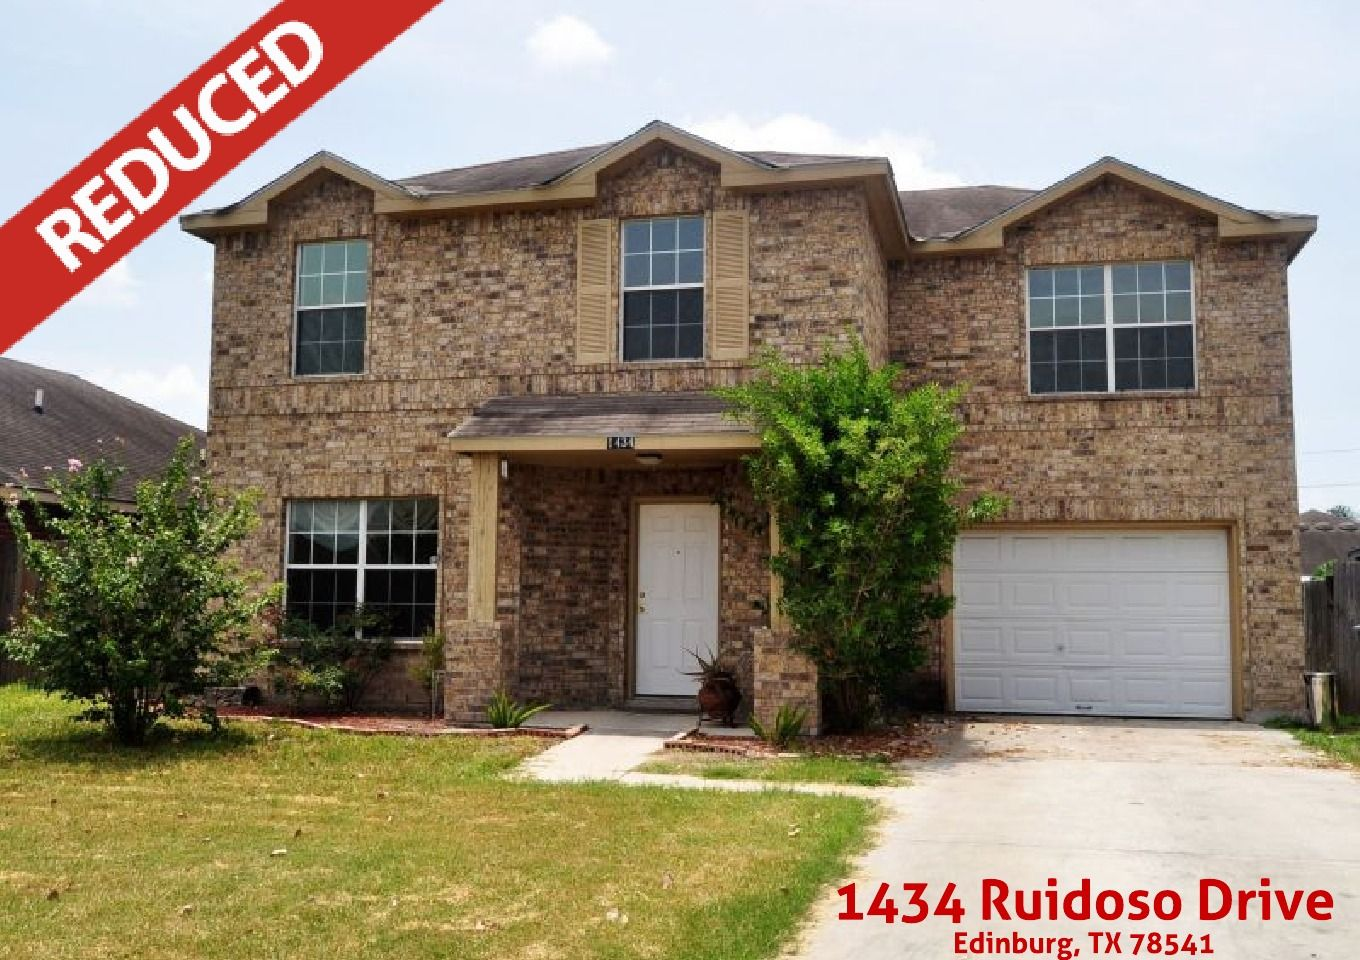 Wonderful 2 Story Home For Sale In The Subdivision Of Las Cruces 1434 Ruidoso Drive Edinburg Tx 78541 Contact The Deldi Ort Ruidoso Real Estate Outdoor Decor